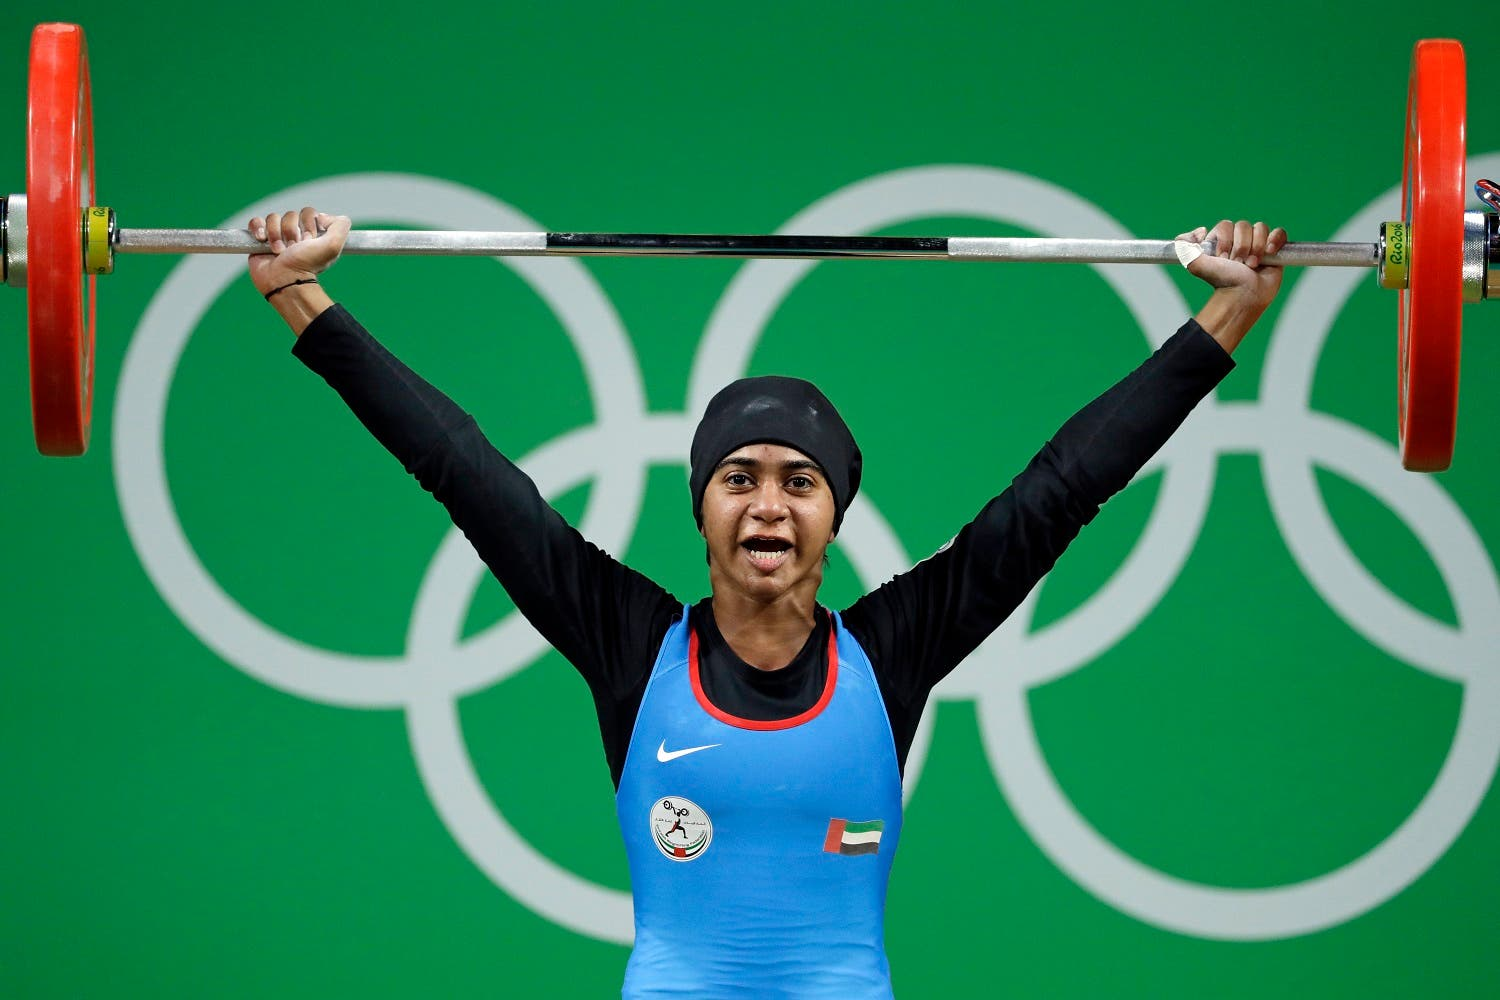 Ayesha Shahriyar M. Albalooshi, of the United Arab Emirates, competes in the women's 58kg weightlifting competition at the 2016 Summer Olympics in Rio de Janeiro. (AP)